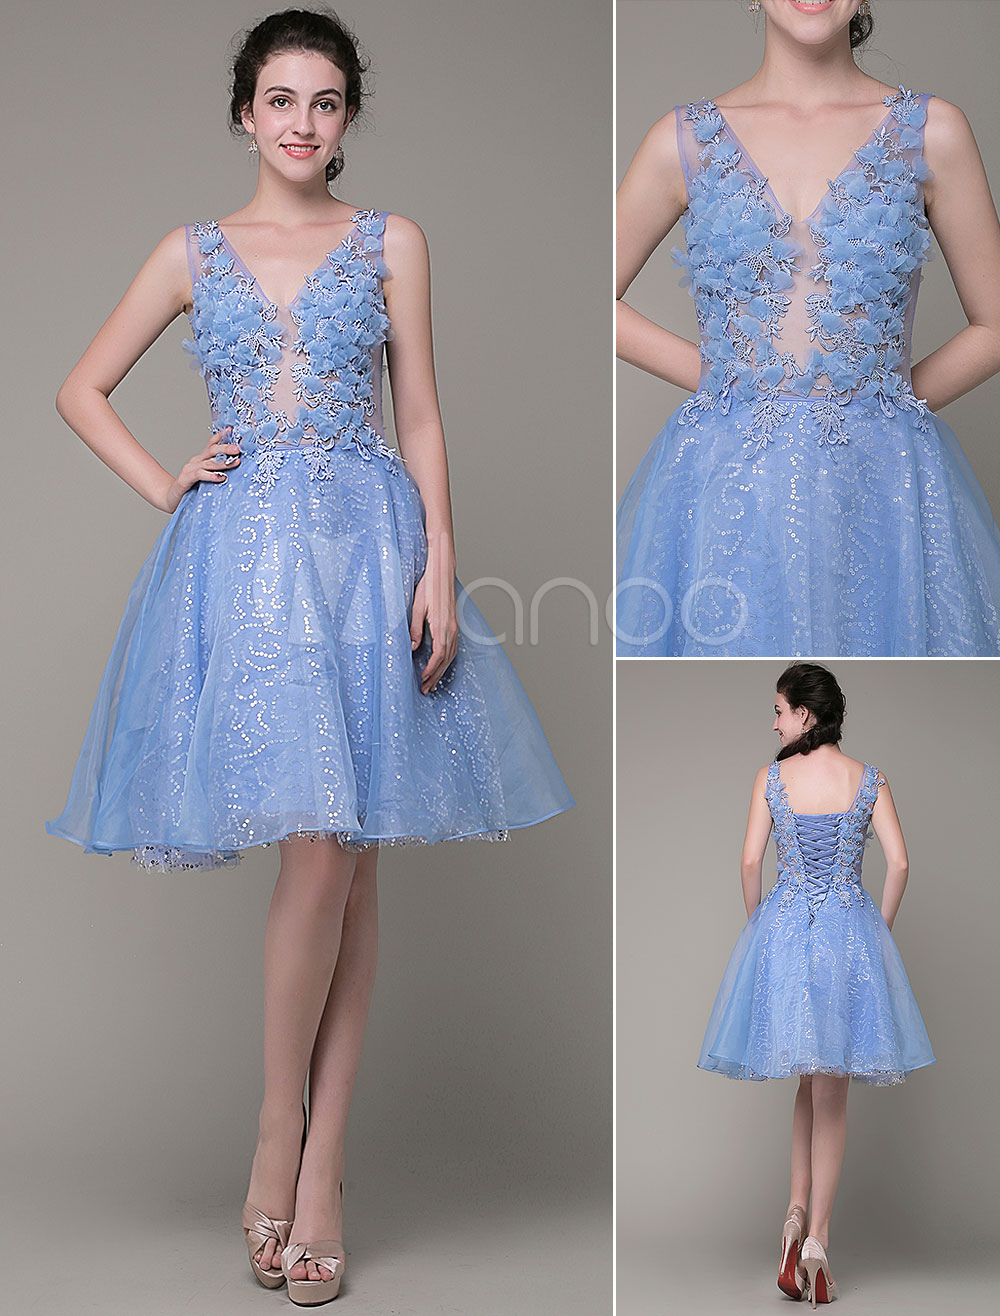 5ddb21fa935e Blue Prom Dress 2019 Short Illusion 3D Flowers Homecoming Dress Organza V  Neck Knee Length Cocktail Dress Milanoo - Milanoo.com